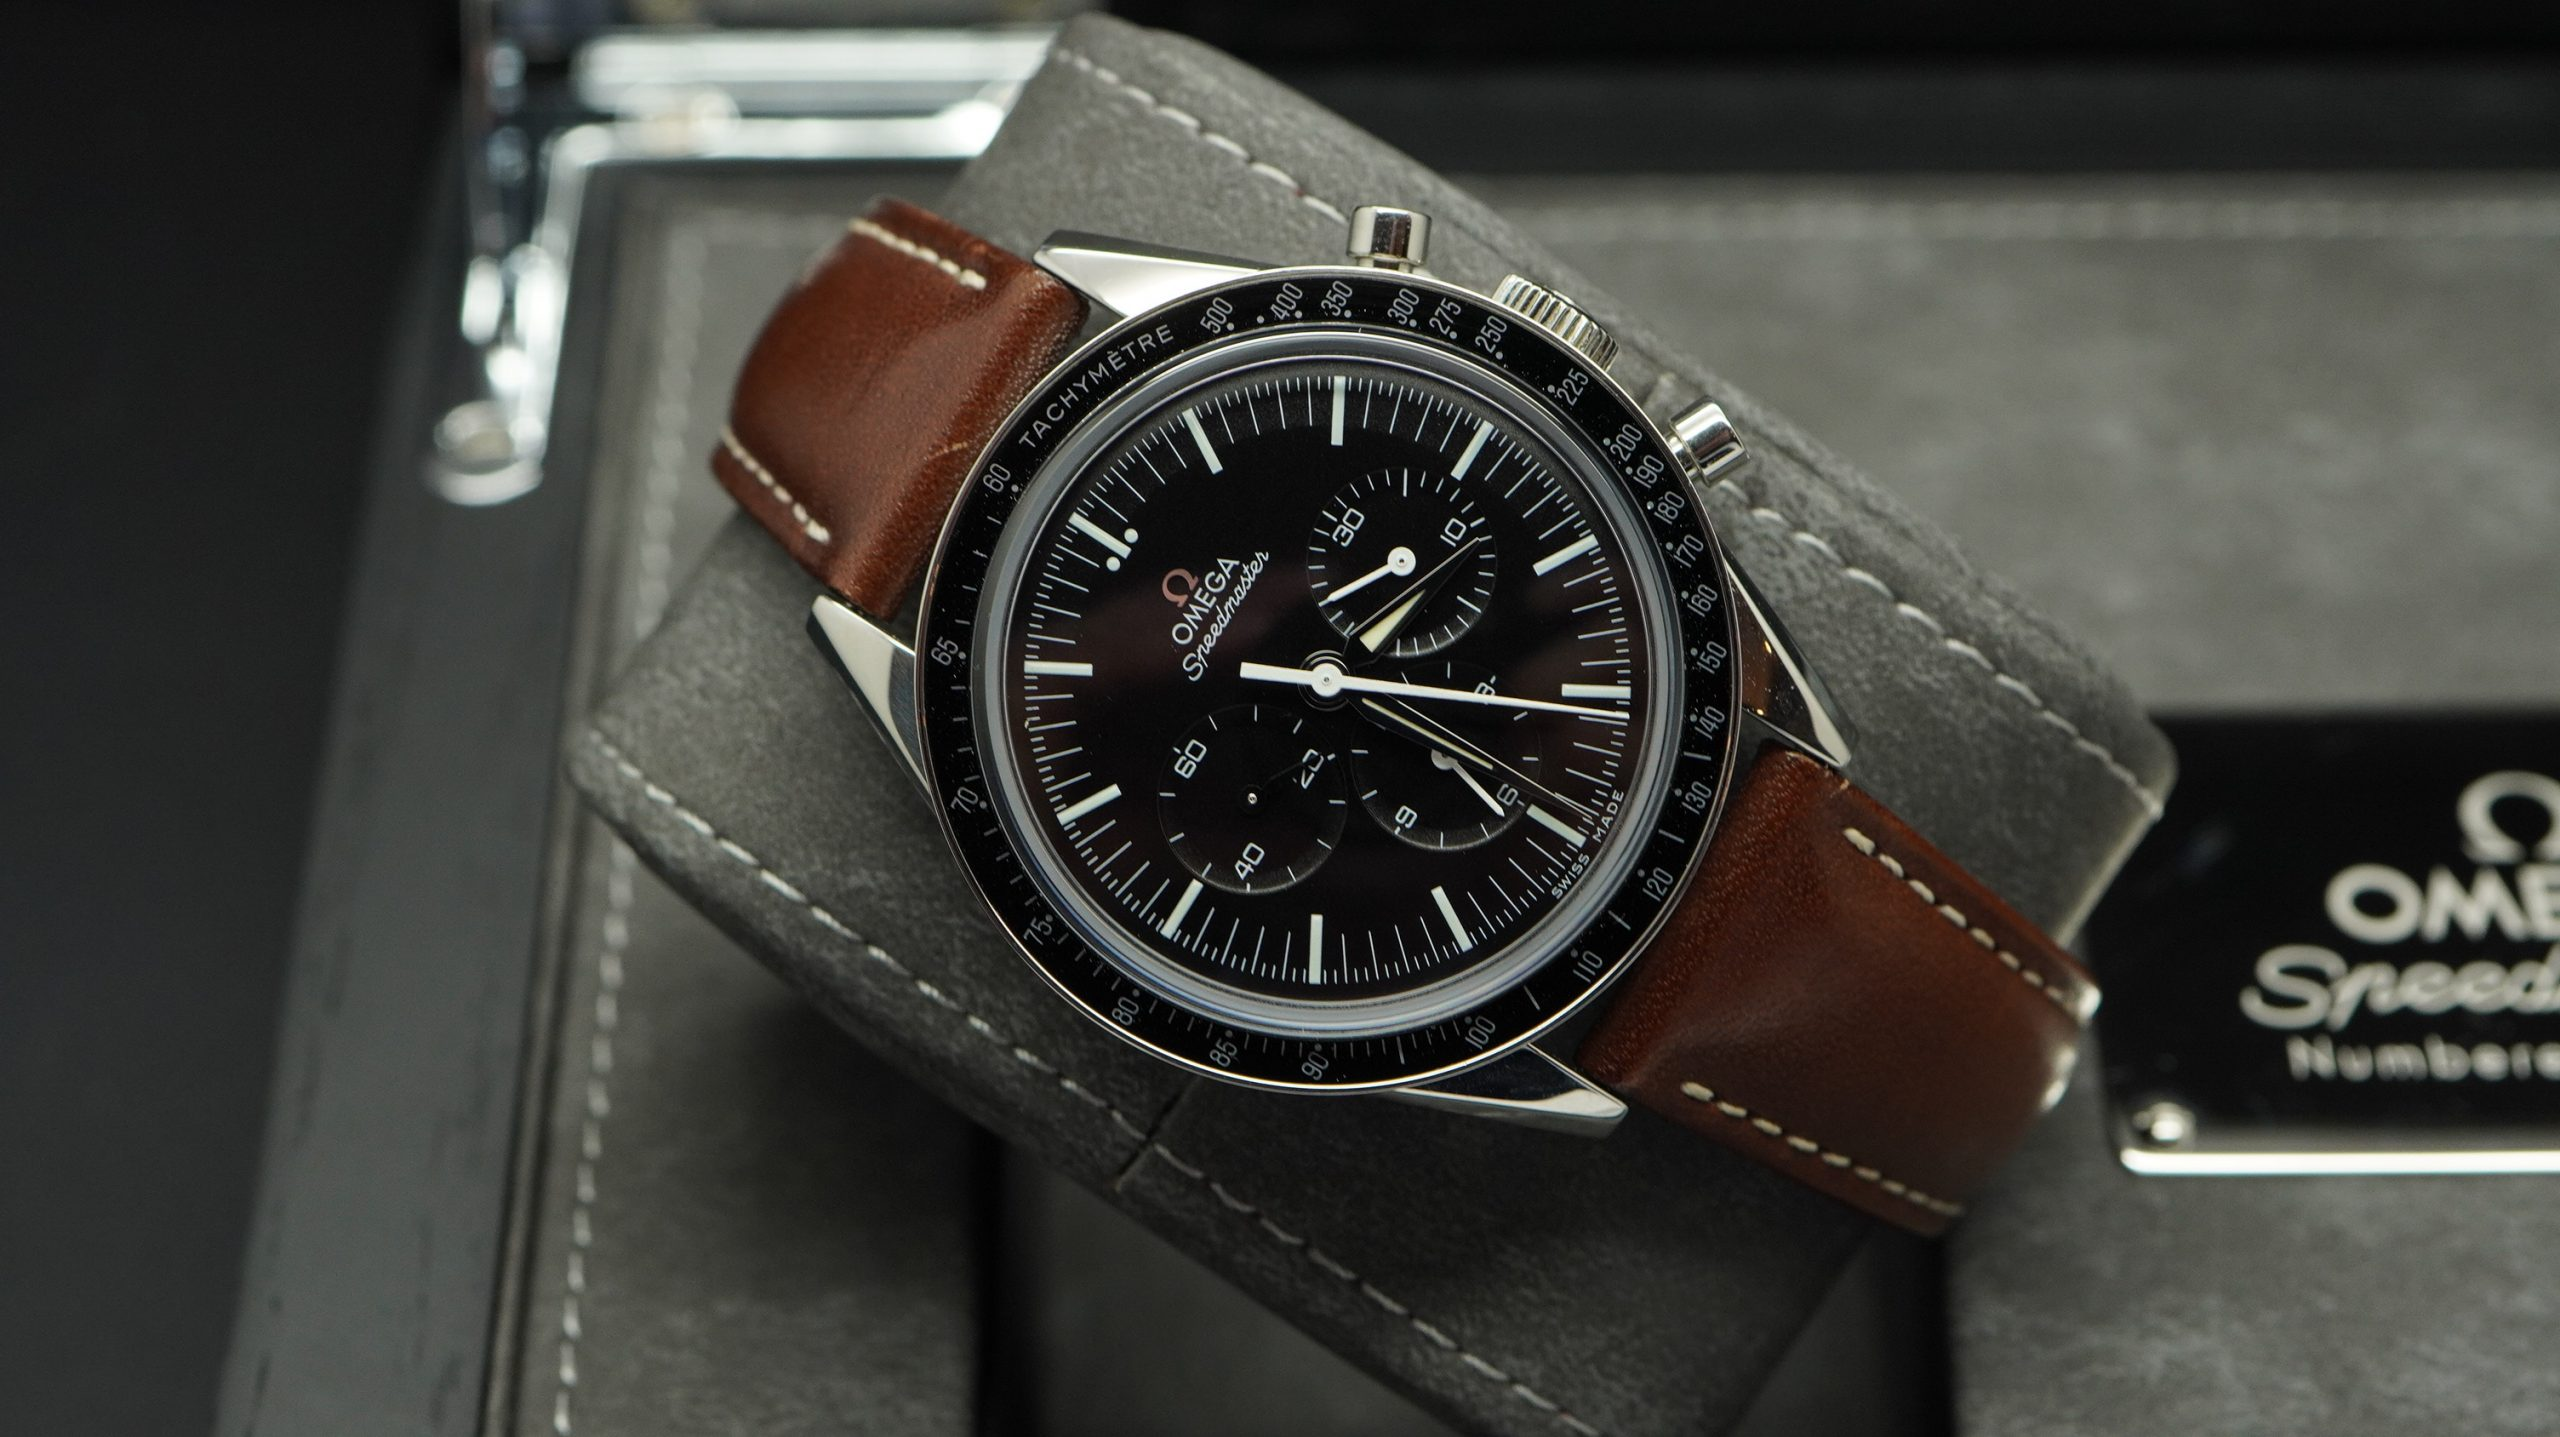 Omega First Omega in Space